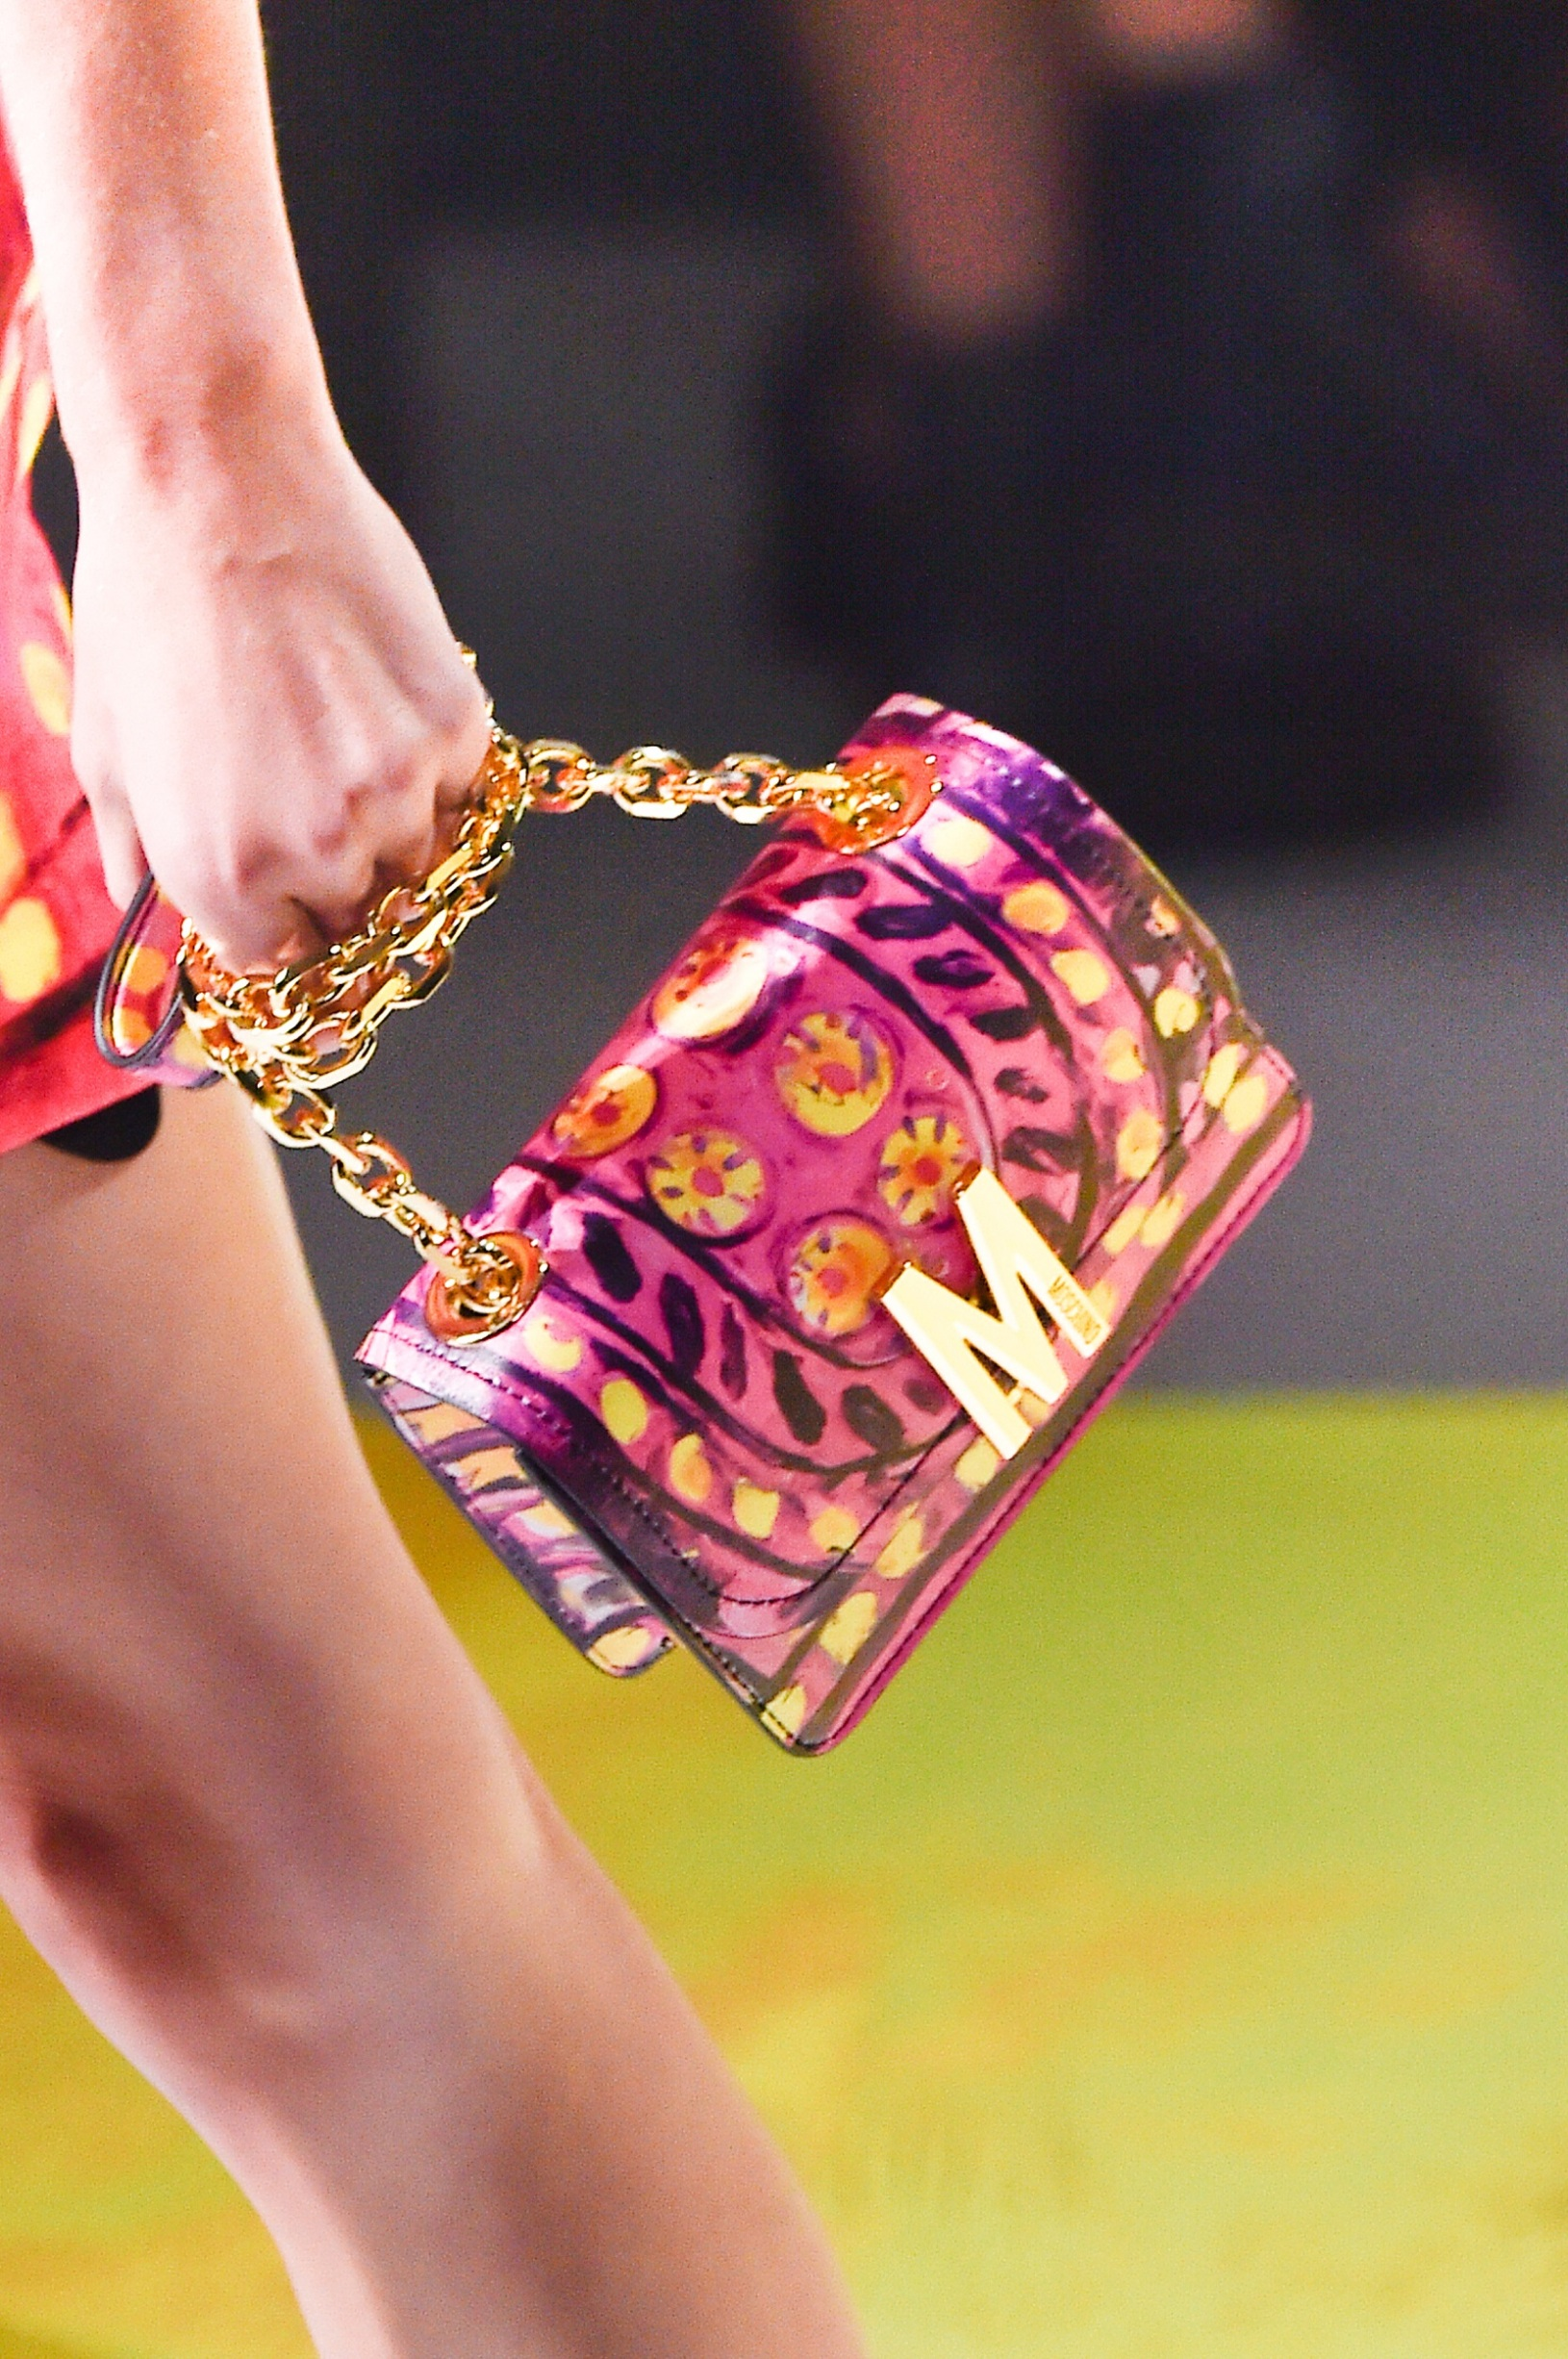 MILAN, ITALY - SEPTEMBER 19: A model, bag detail, walks the runway at the Moschino show during the Milan Fashion Week Spring/Summer 2020 on September 19, 2019 in Milan, Italy. (Photo by Pietro D'Aprano/Getty Images)